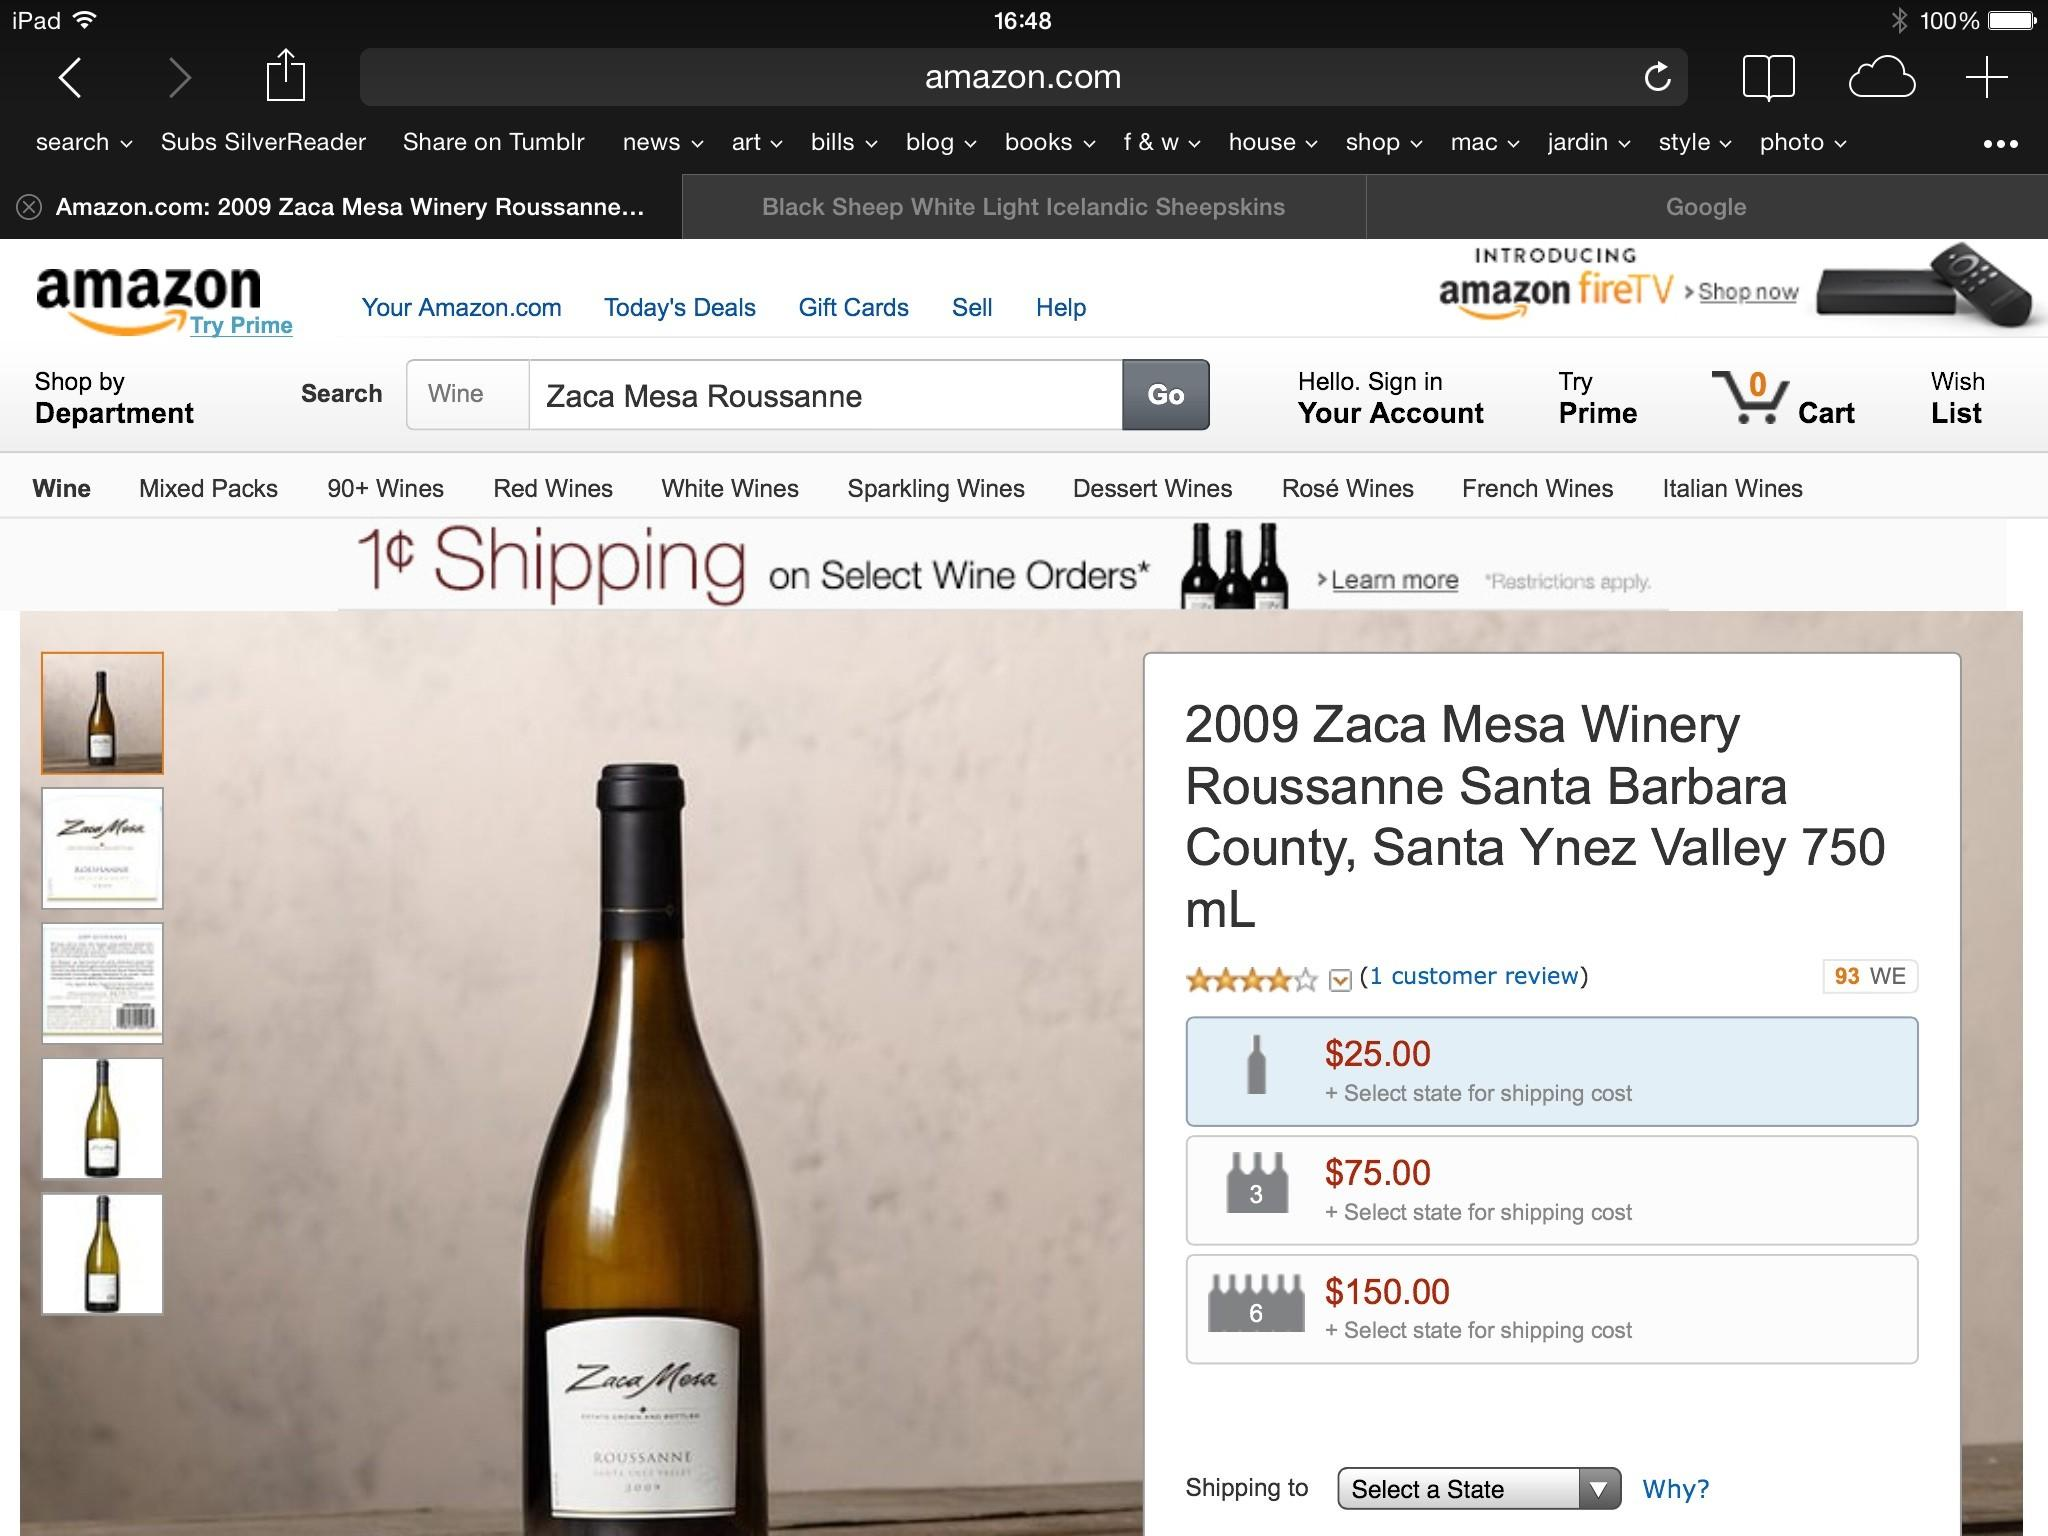 The 2009 Zaca Mesa Winery Roussanne from Santa Ynez Valley is one of the 10 bestselling wines at Amazon.com.